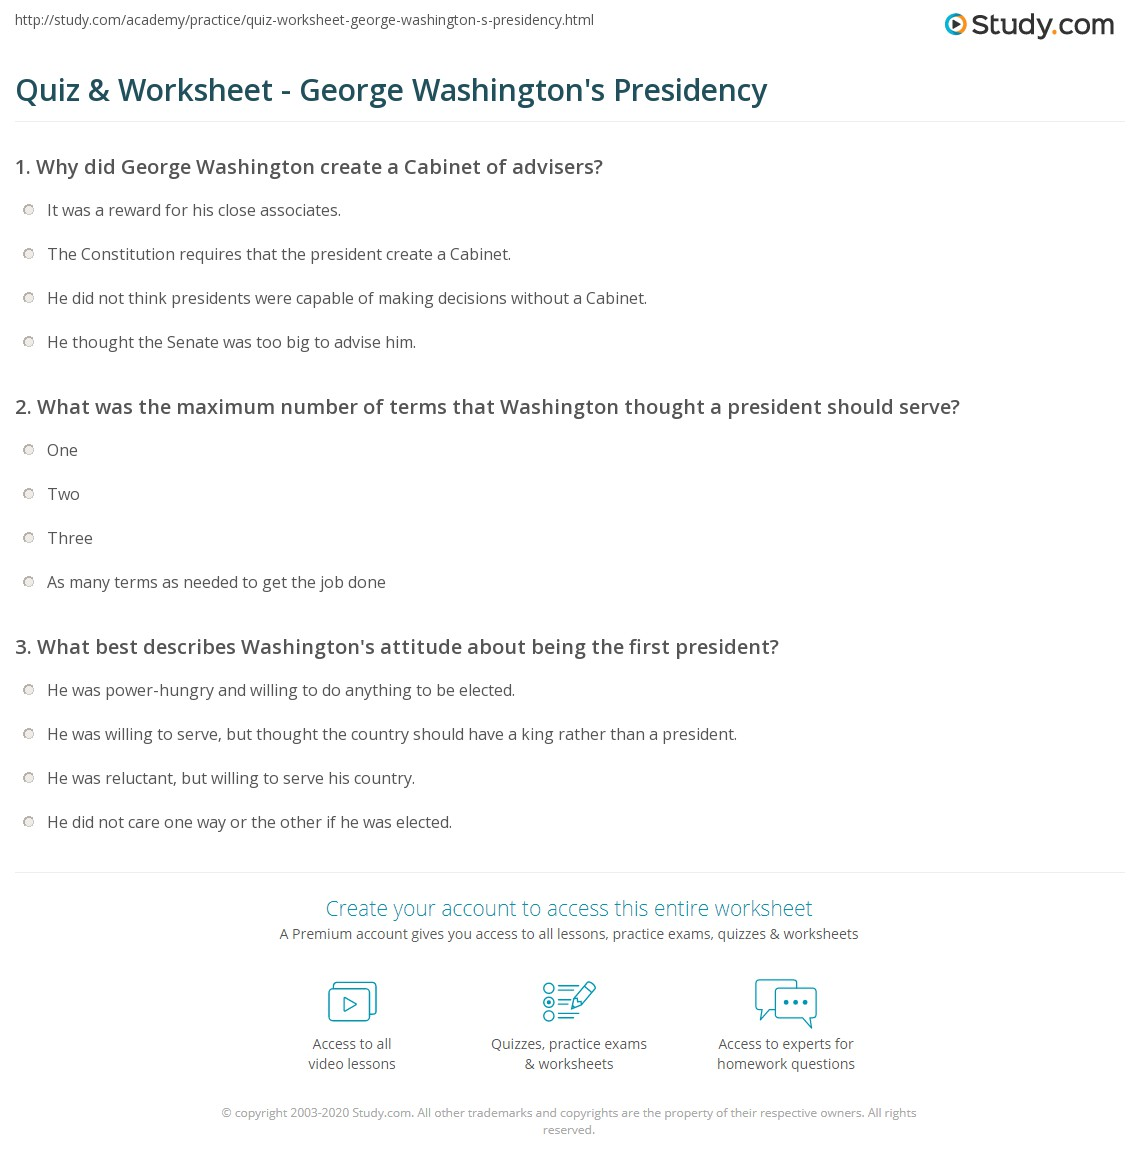 Print George Washington Presidency Facts Worksheet